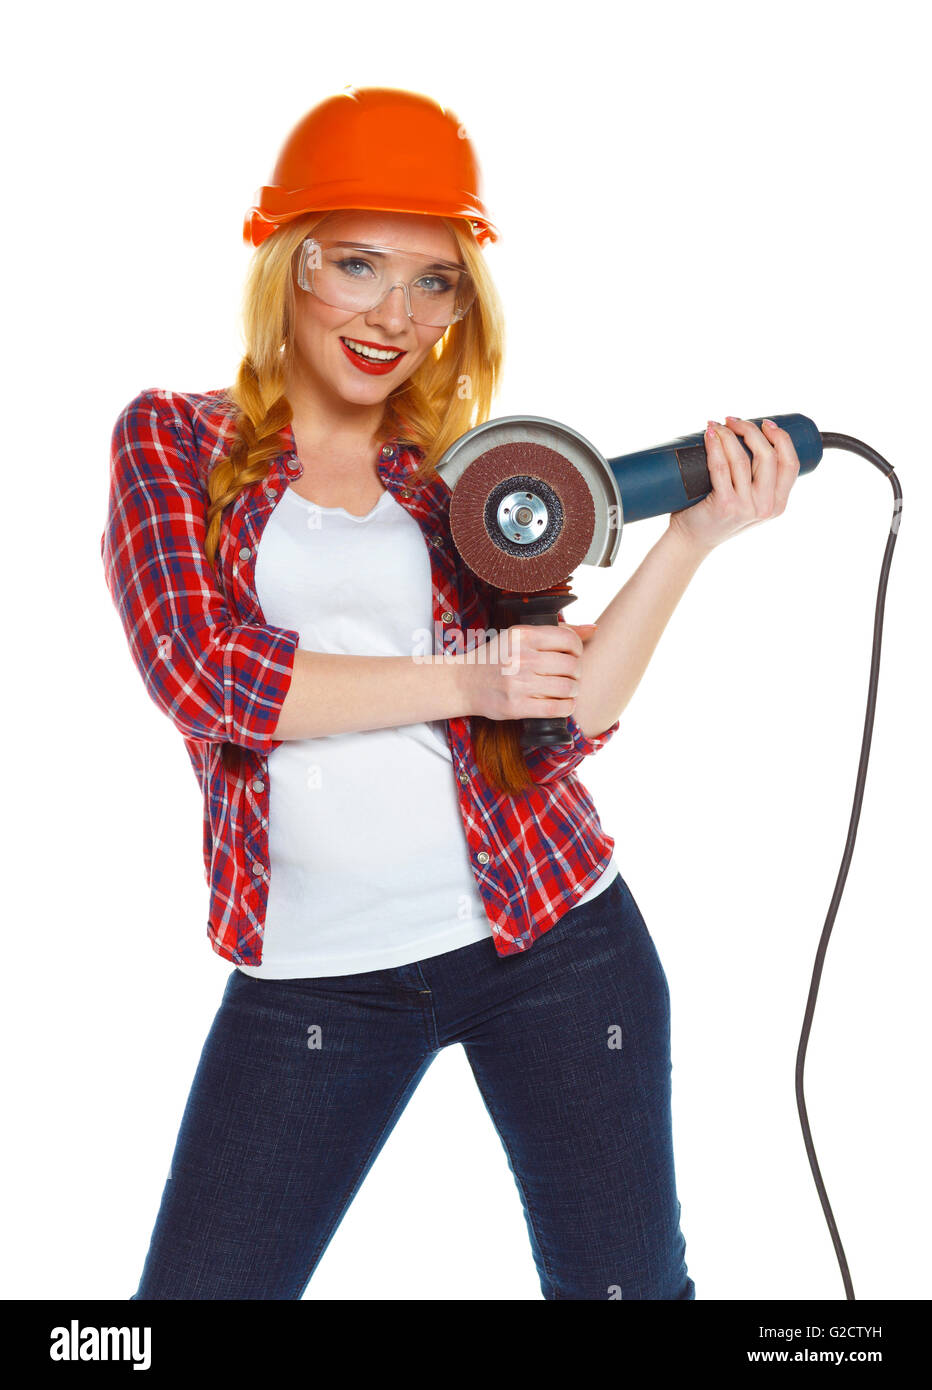 Female construction worker in a hard hat with angle grinder over white background - Stock Image